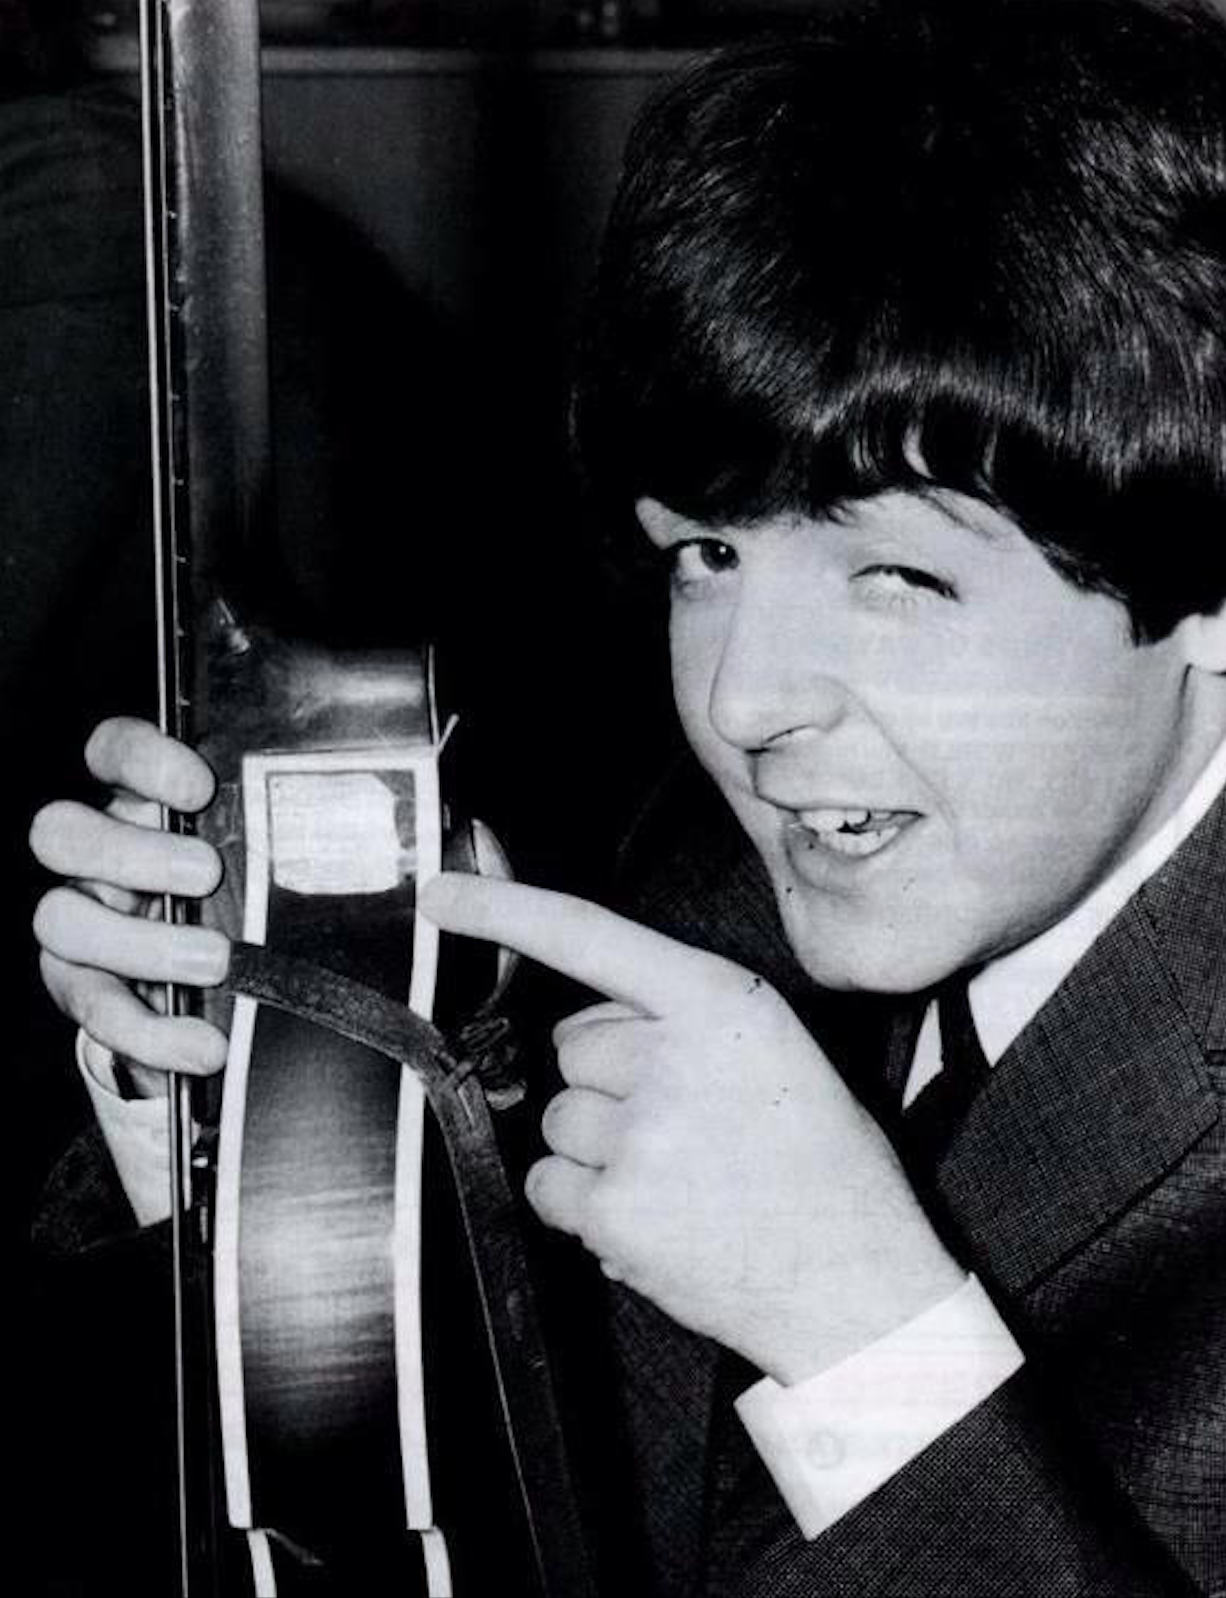 Paul McCartney with his 1963 Hofner bass and leather strap.